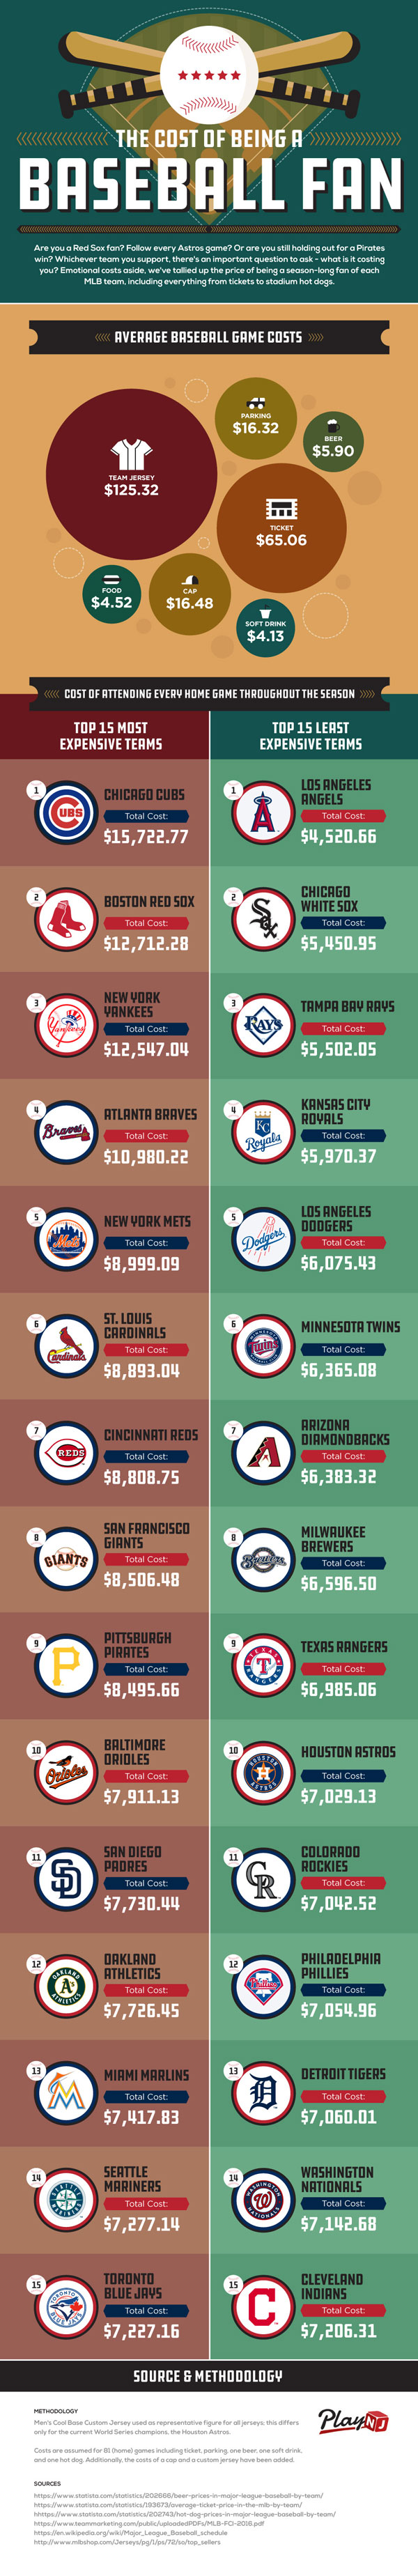 Cost of Being a Baseball Fan infographic